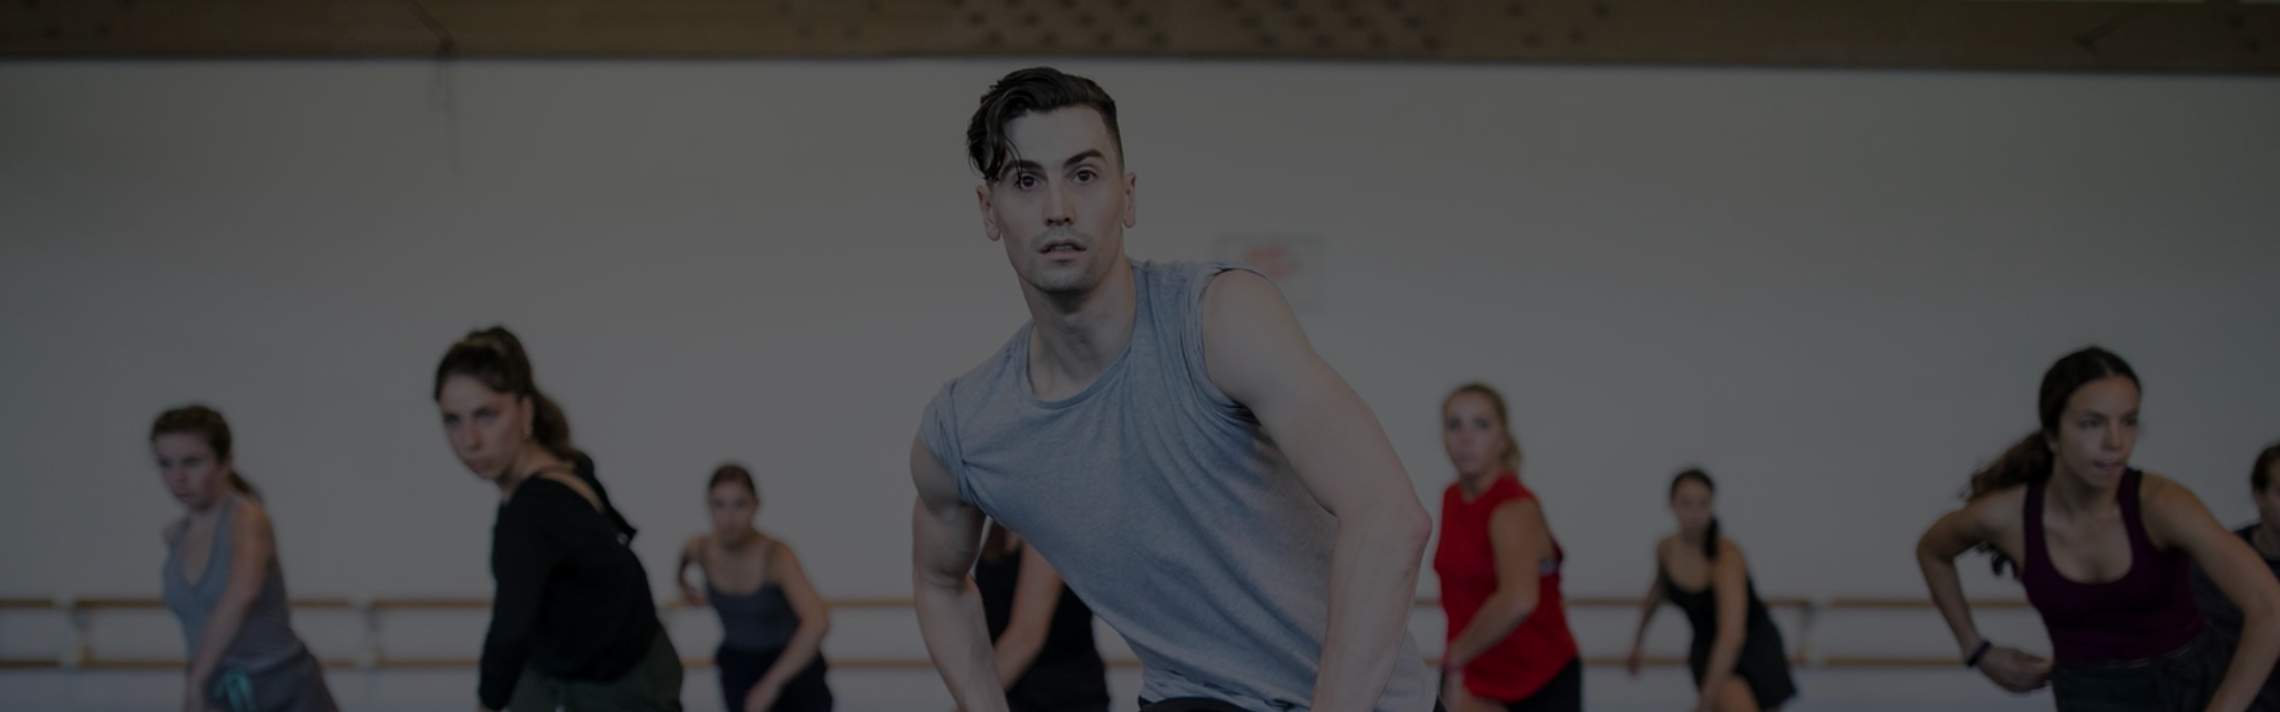 HS Pro - Under the direction of Alexandra Wells, Artistic Director of Springboard Danse Montréal, the program's mission is to address the needs of dancers striving to enter the current job market by providing diverse training alongside one of the prestigious contemporary dance companies in the world.